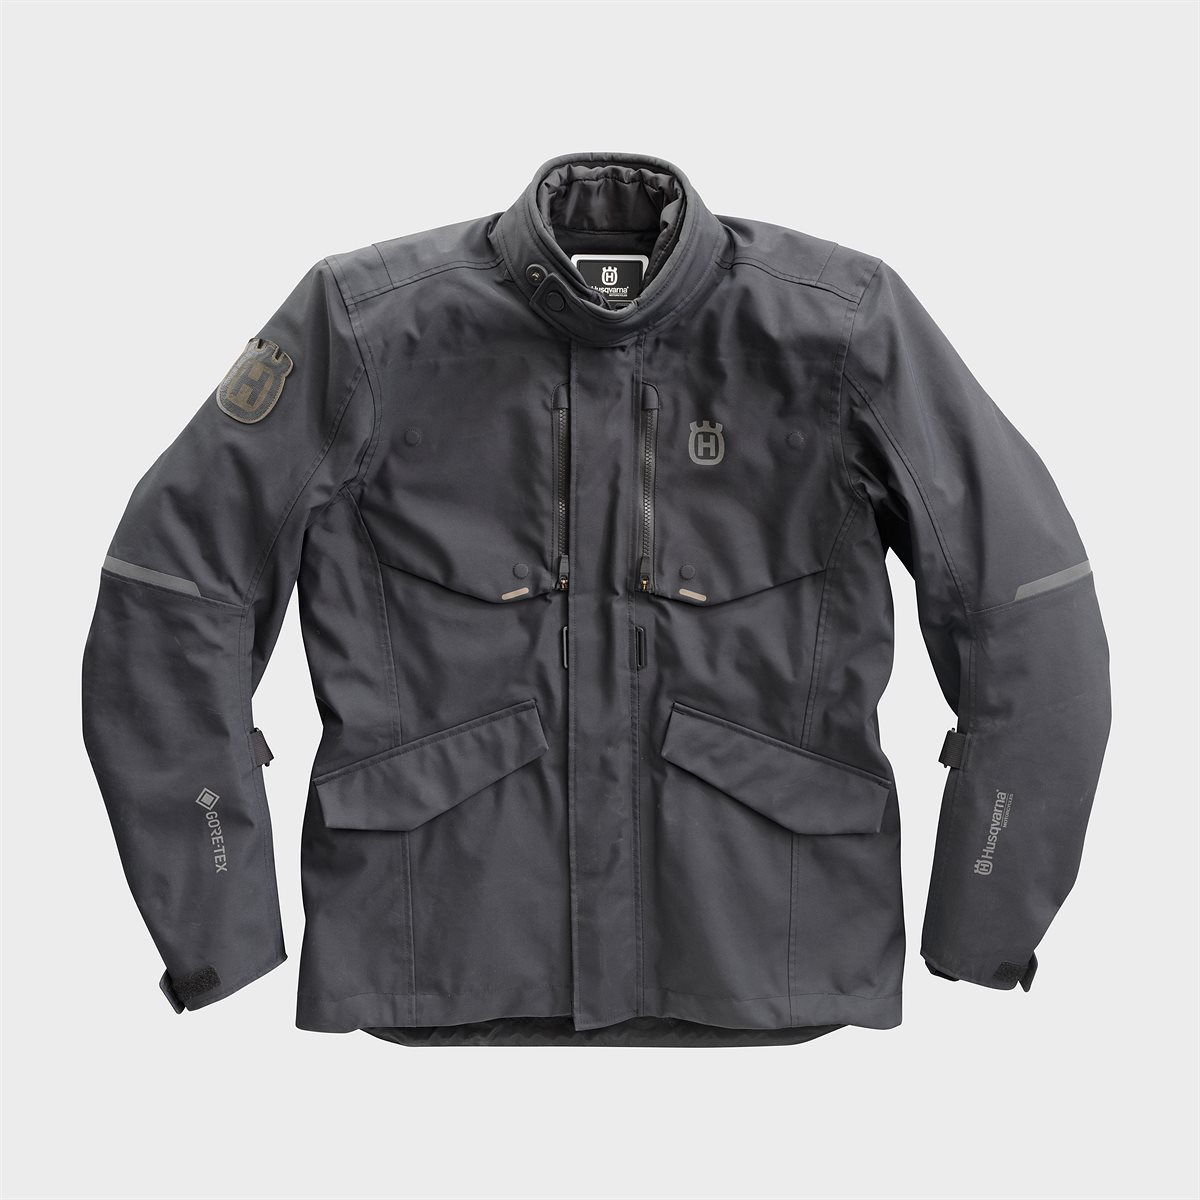 Pursuit GTX Jacket (2)